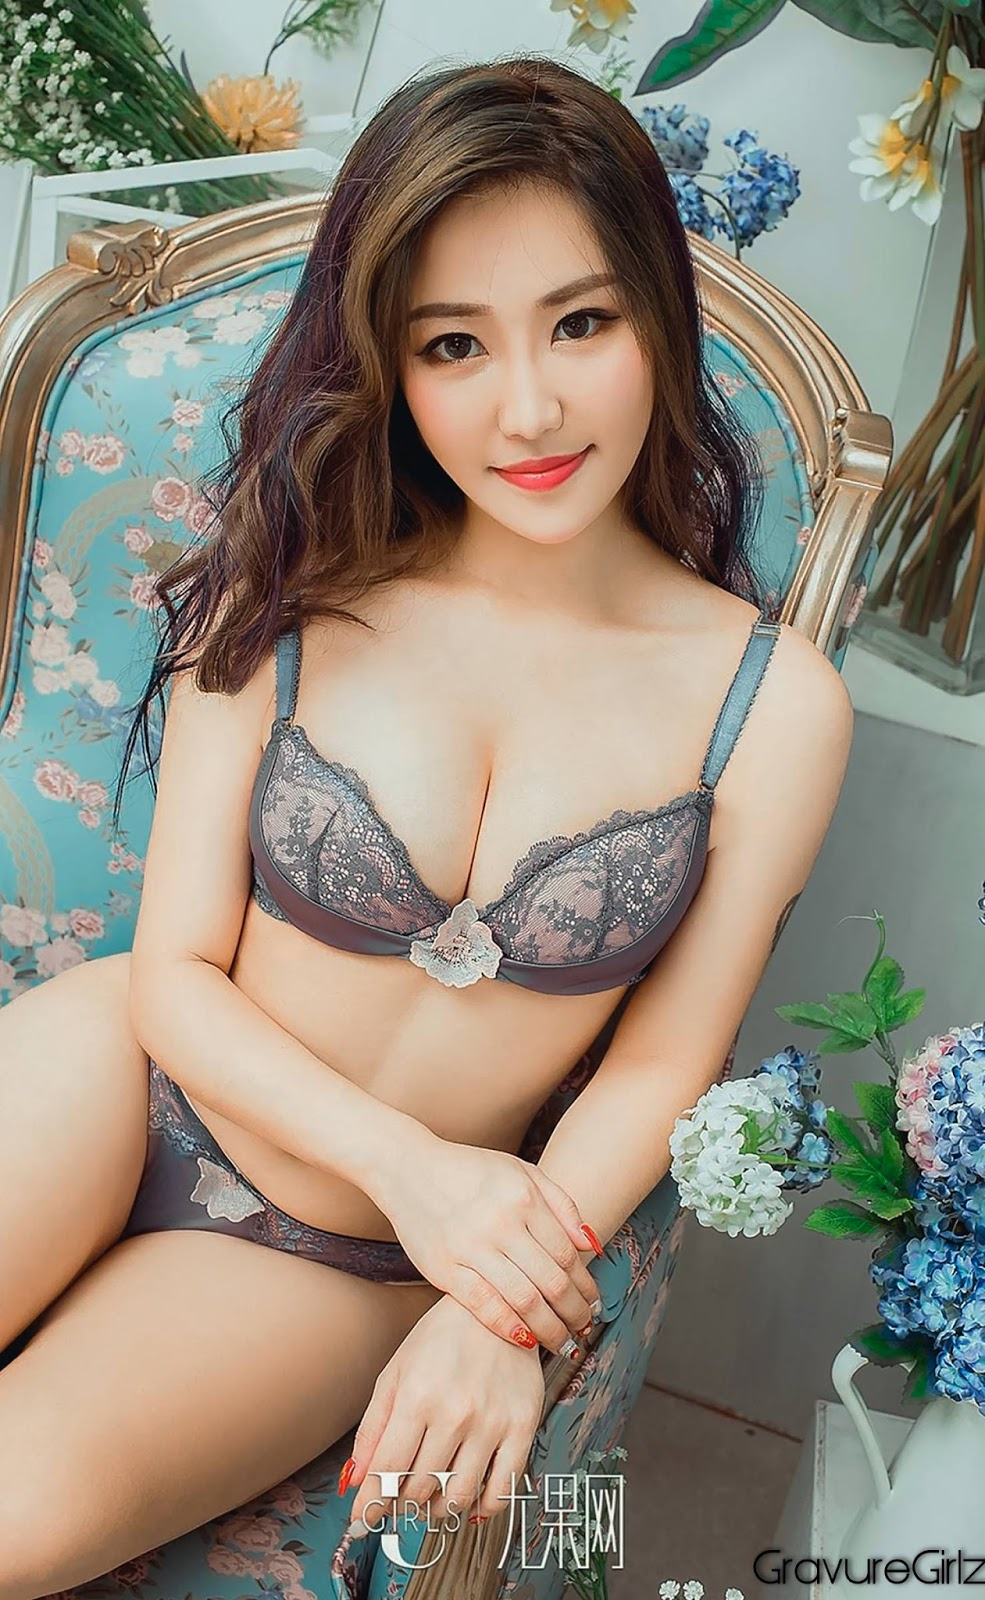 Assed asian av models girl the